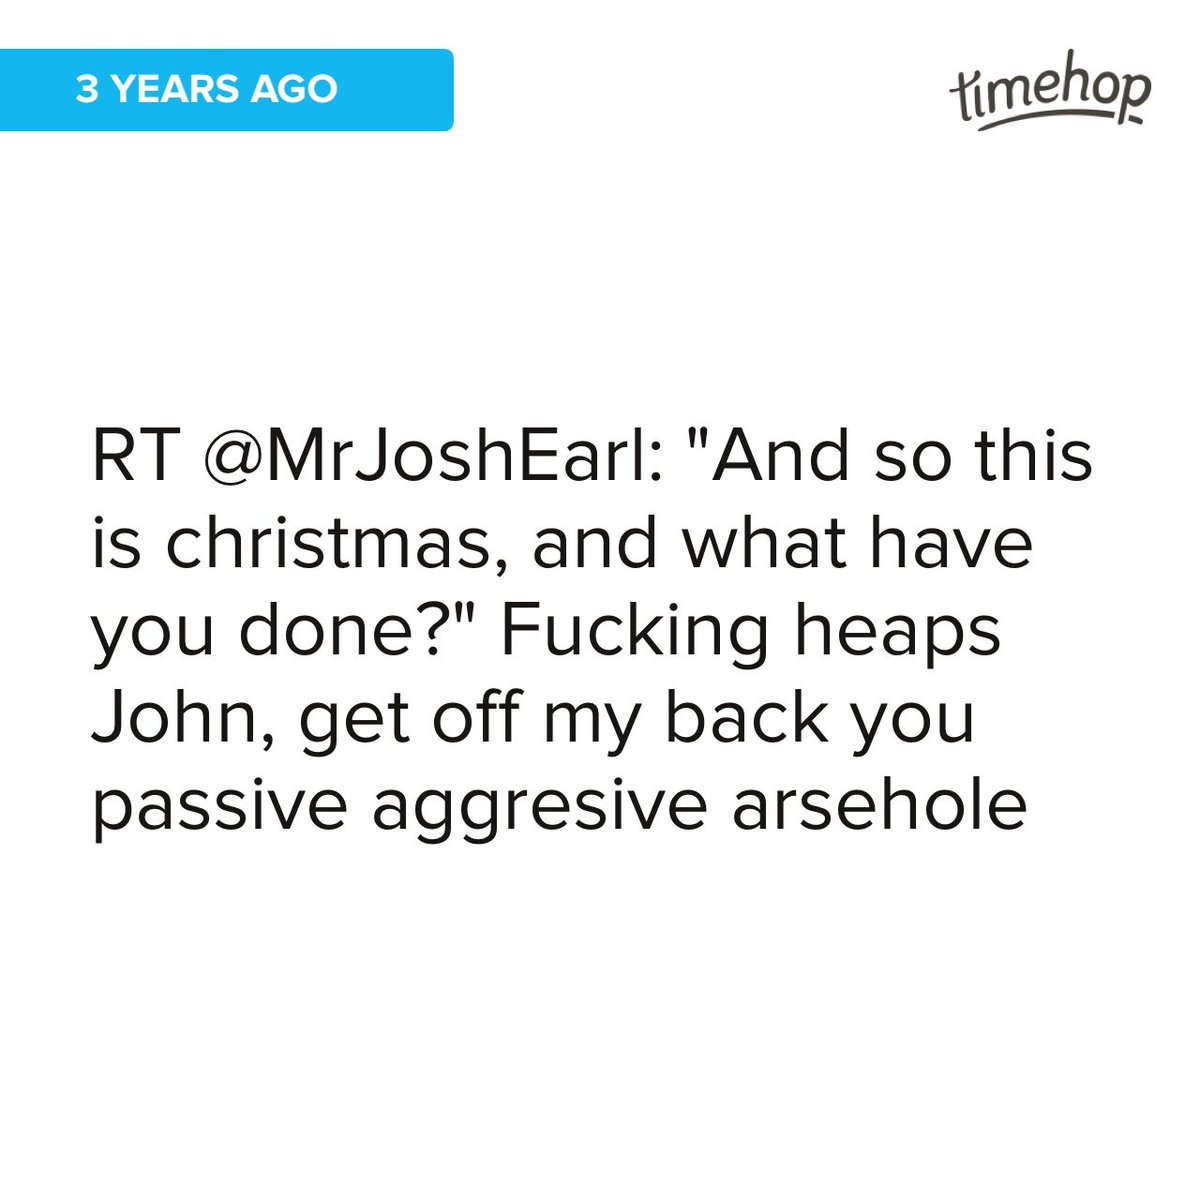 @MrJoshEarl Yeah, I still laugh like a loon whenever I read this. https://t.co/shbc1V4bFJ